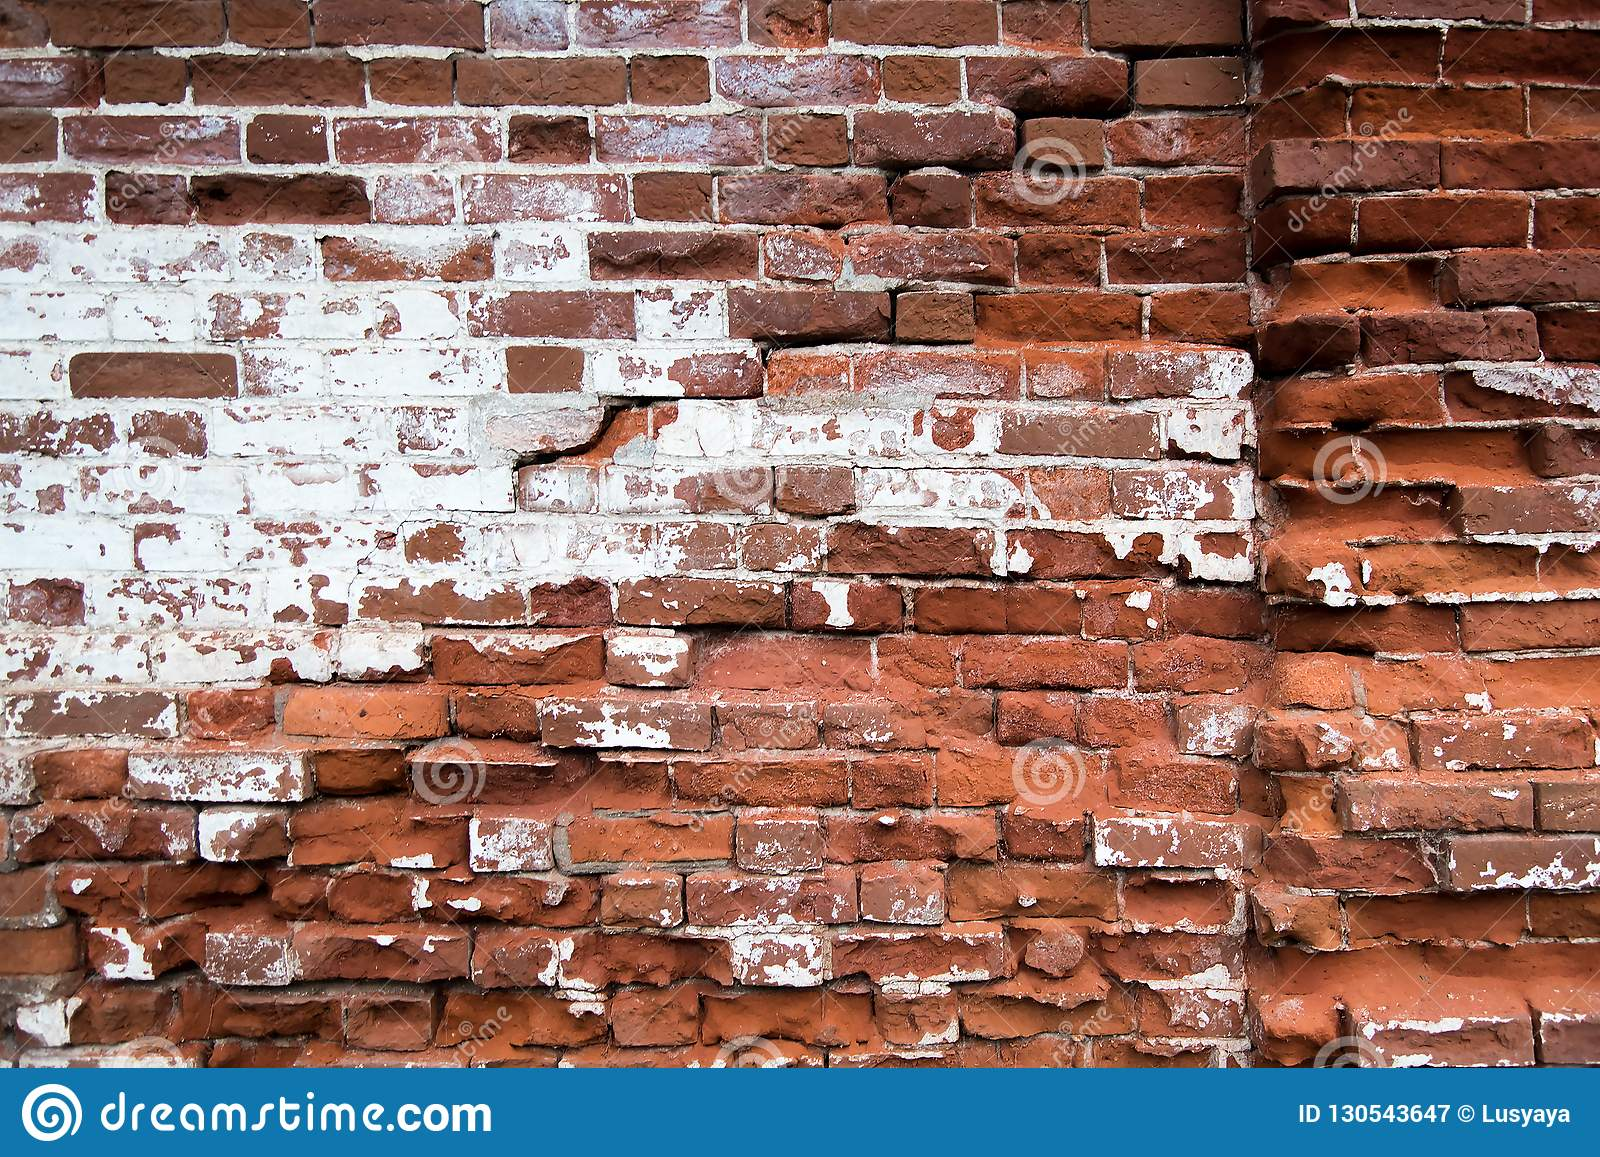 old red brick wall texture background. Old house facade.